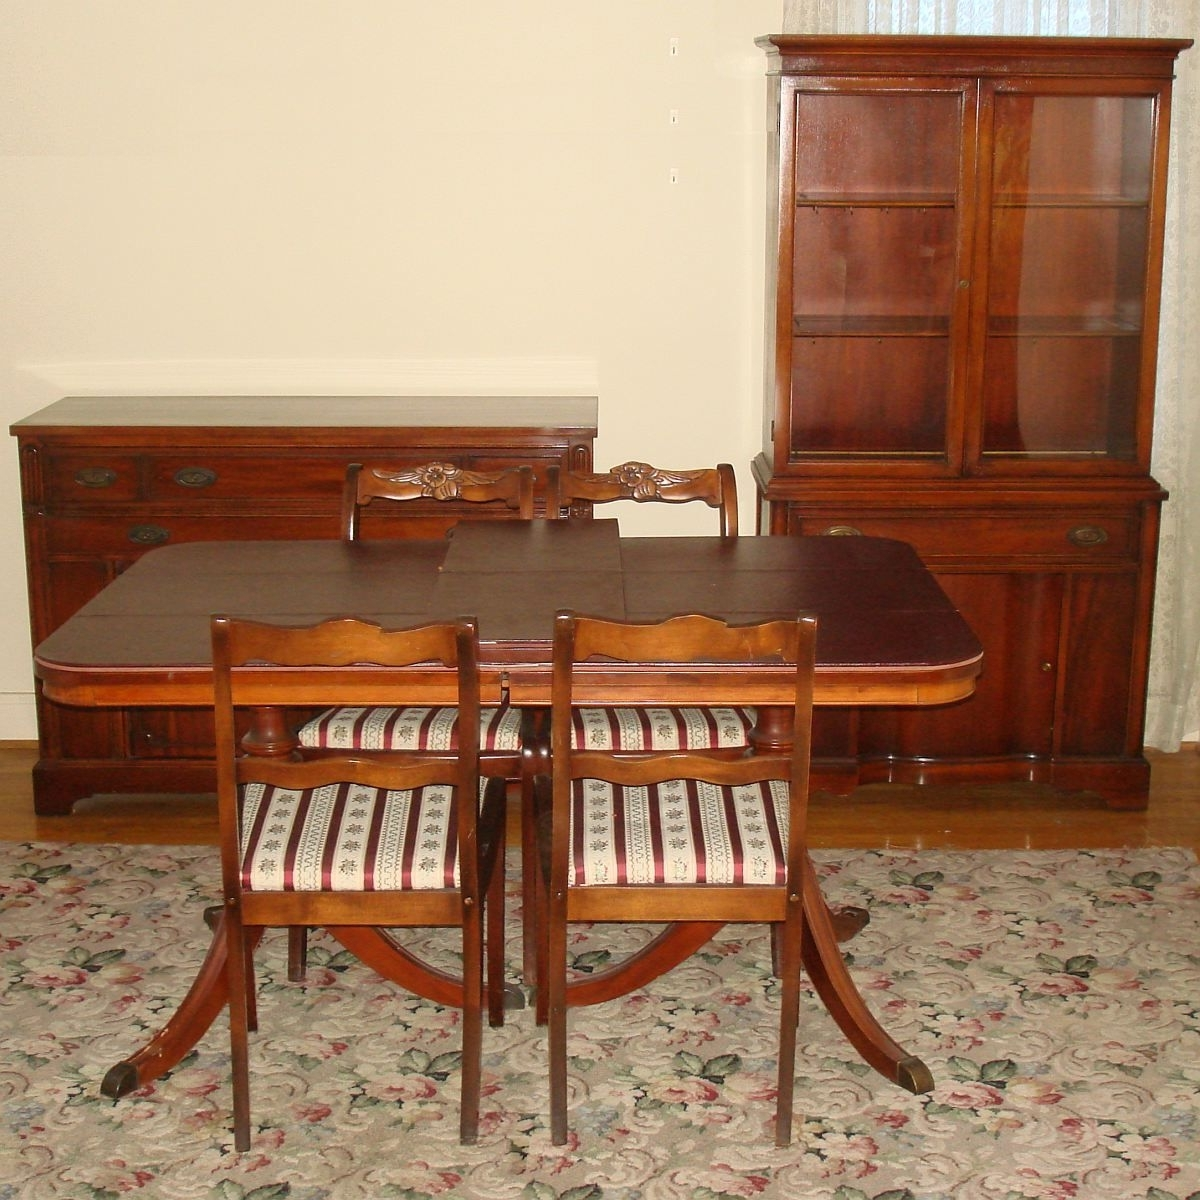 Latest Bernhardt Duncan Phyfe Mahogany Dining Room Set Double Pedestal Inside Mahogany Dining Tables Sets (View 9 of 25)